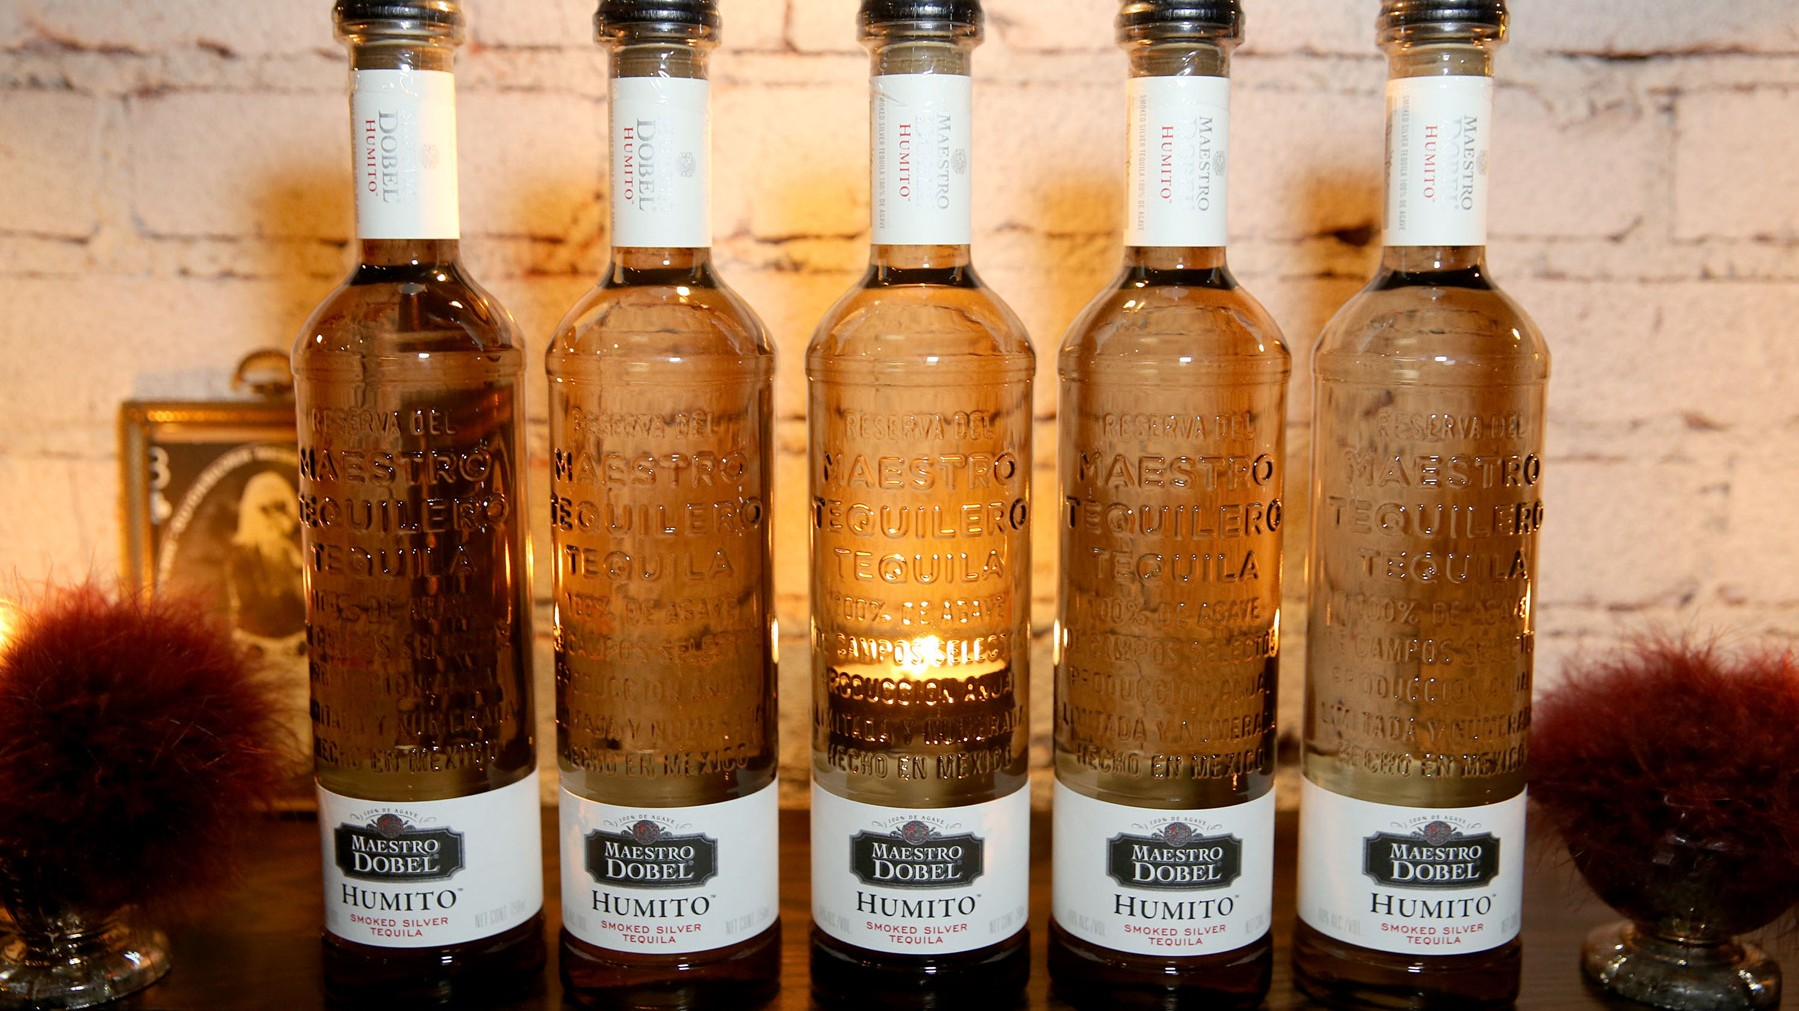 The World's First Smoked Silver Tequila by Maestro Dobel Tequila on May 11, 2016 in Los Angeles, California. (Photo by Rachel Murray/Getty Images for Proximo Spirits)